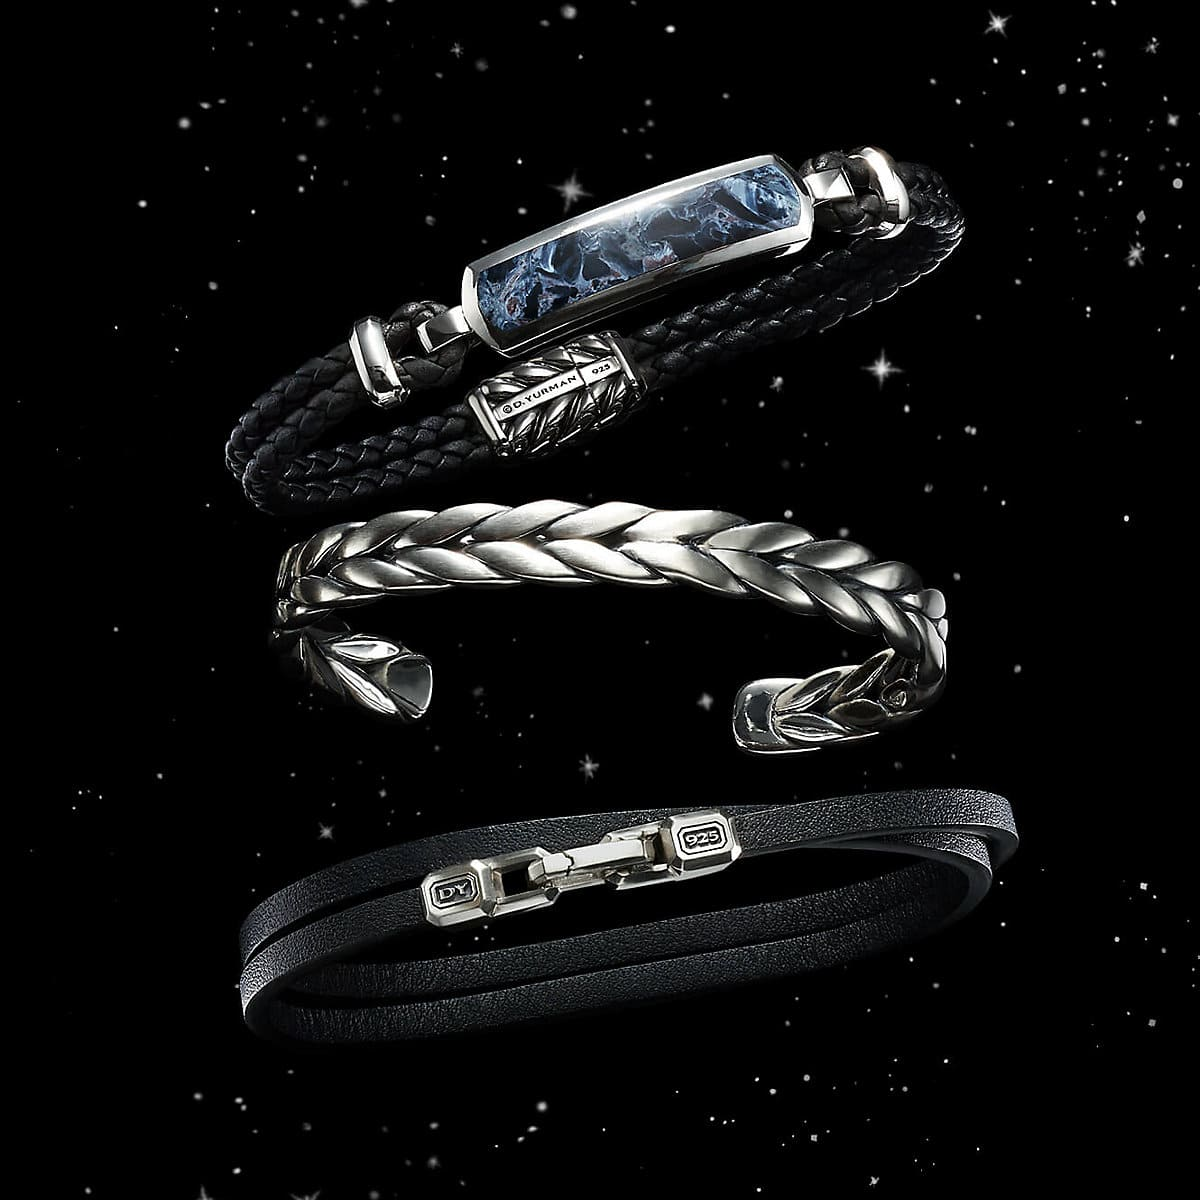 A color photograph shows a vertical stack of three David Yurman men's Chevron bracelets floating in front of a starry night sky. The bracelets are crafted from sterling silver with blue, brown or black rubber.